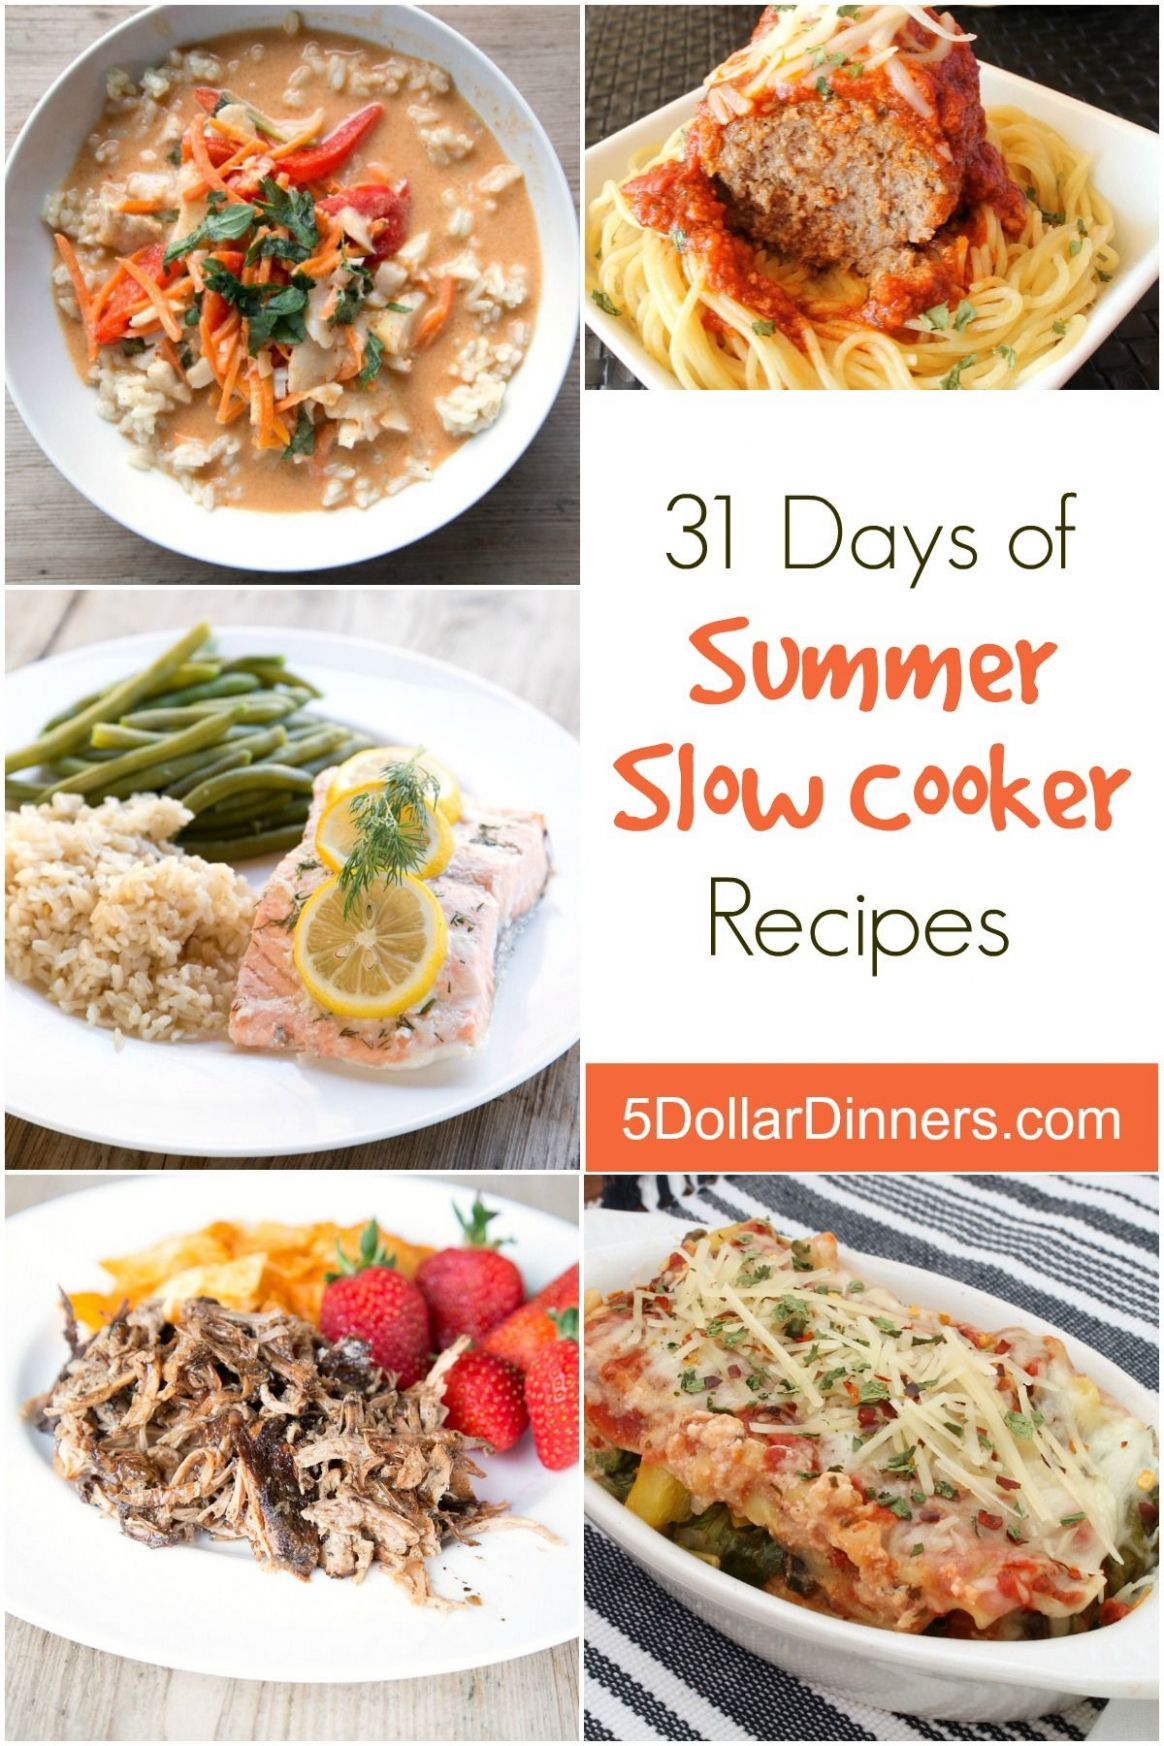 11 Days of Summer Slow Cooker Recipes | Slow cooker recipes, Food ..